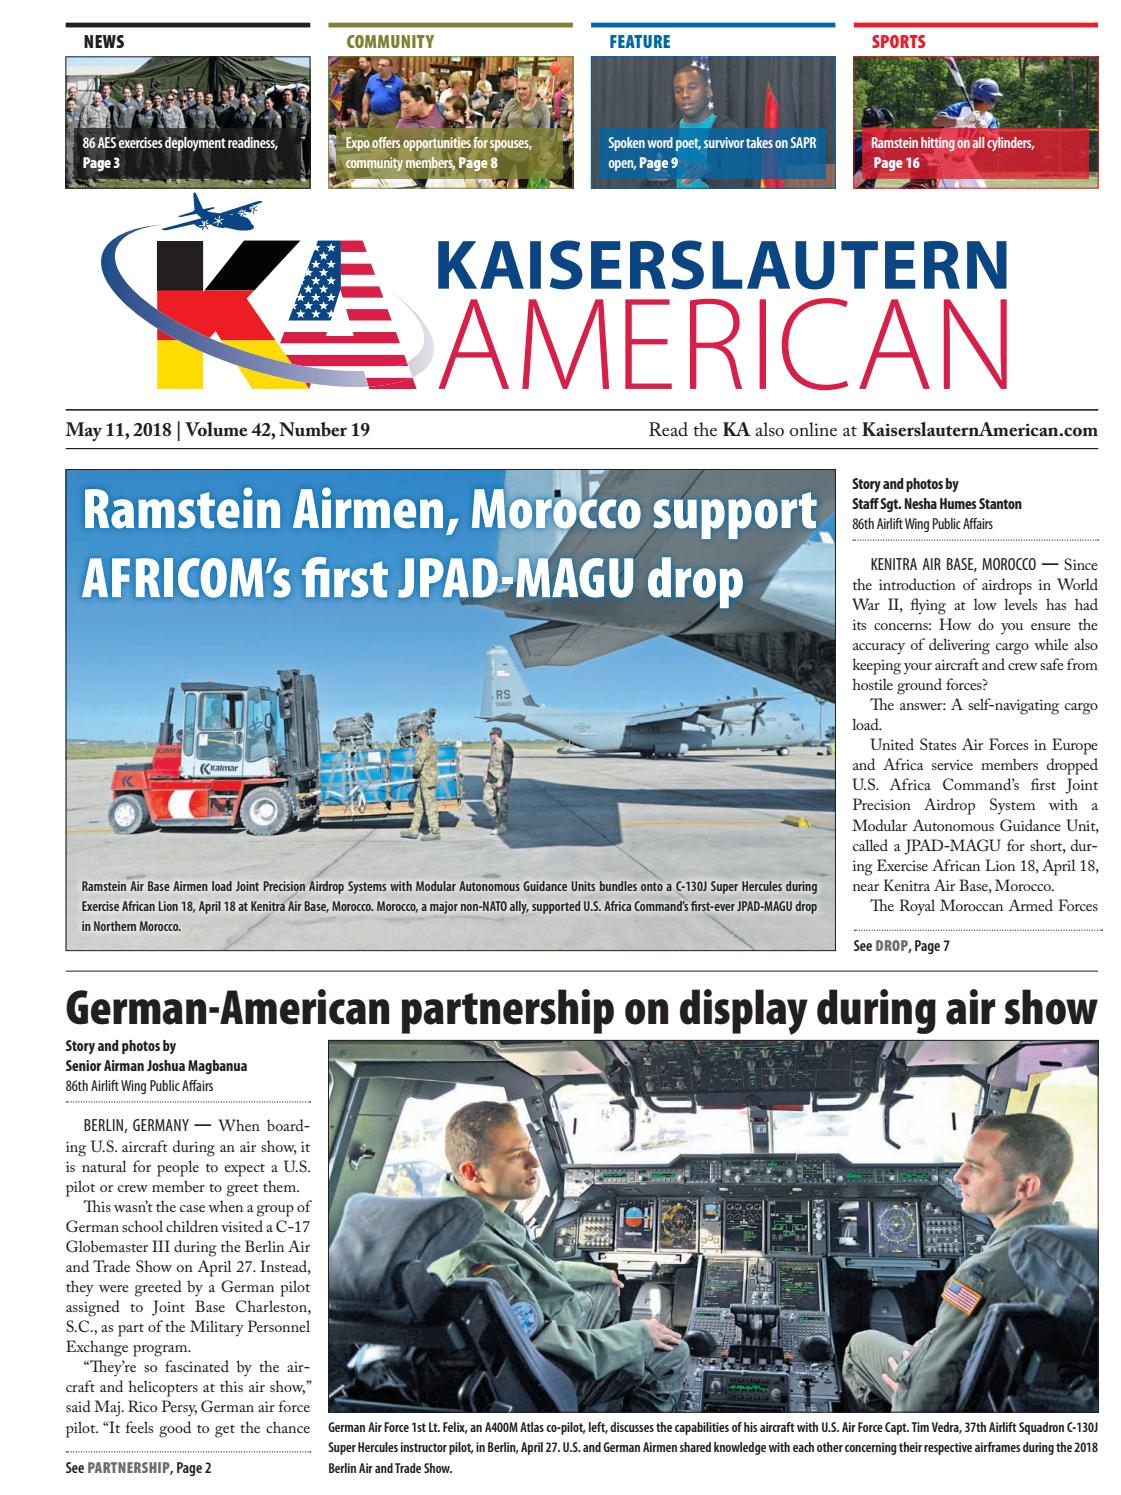 Kaiserslautern American, May 11, 2018 by AdvantiPro GmbH - issuu